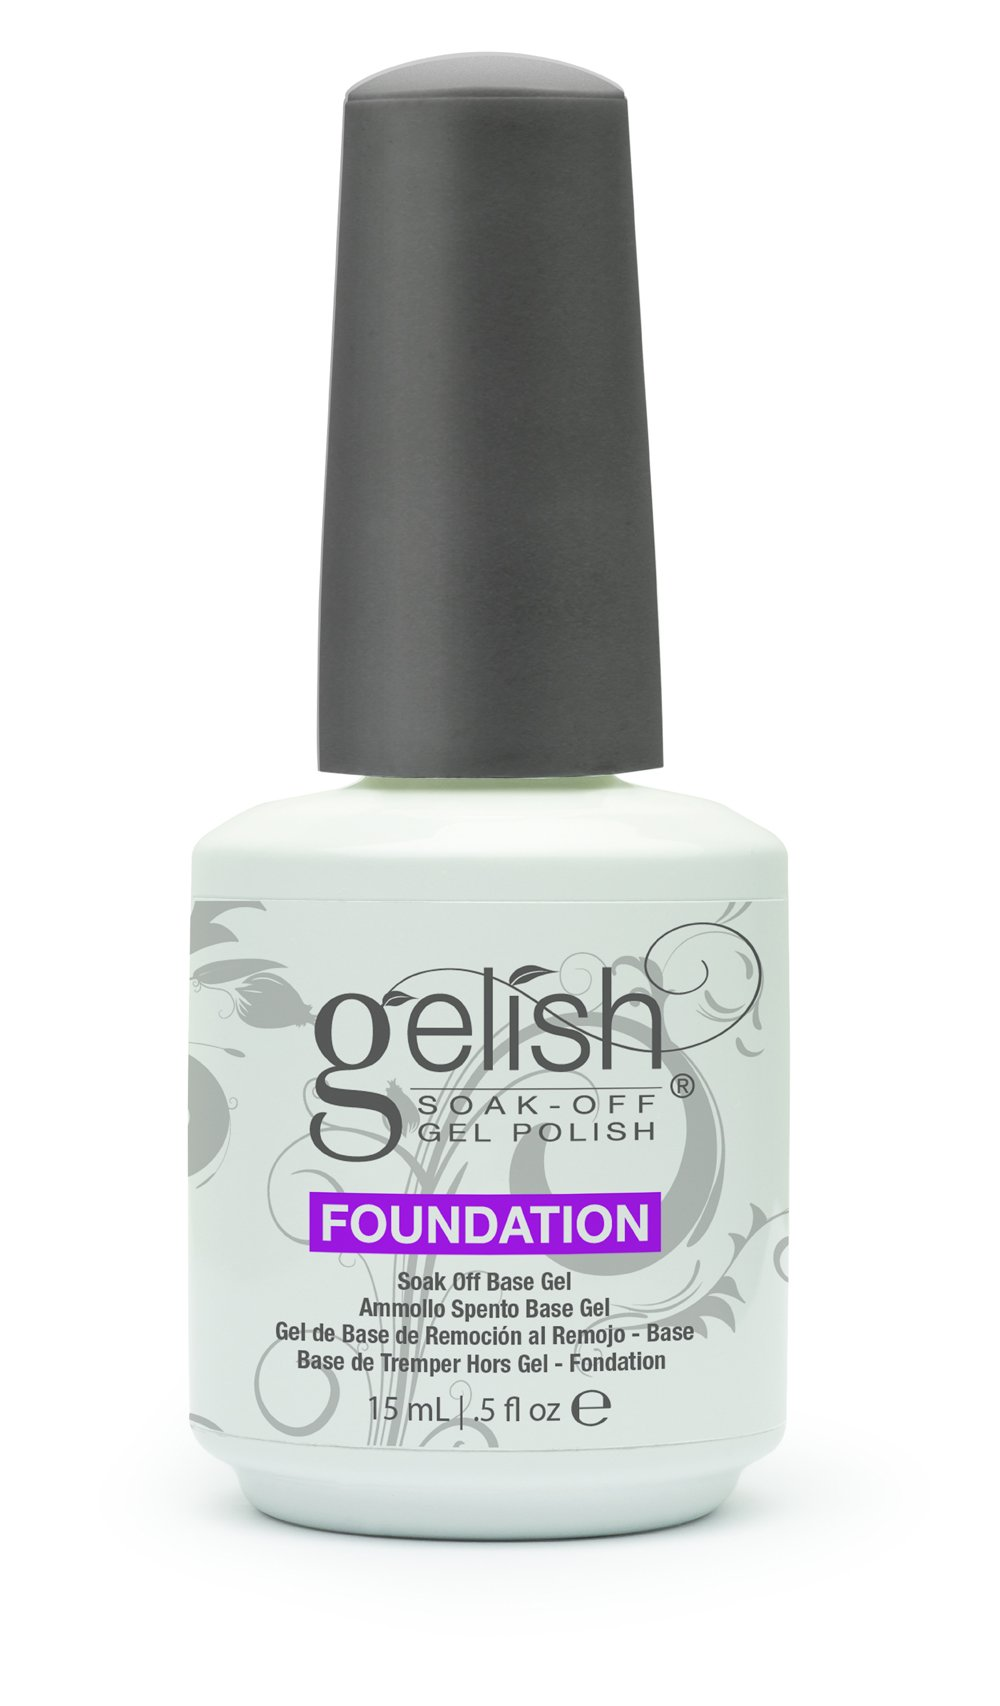 NEW Gelish Full Size Gel Nail Polish Basix Care Kit (15ml) + Remover & Cleanser by Gelish (Image #2)